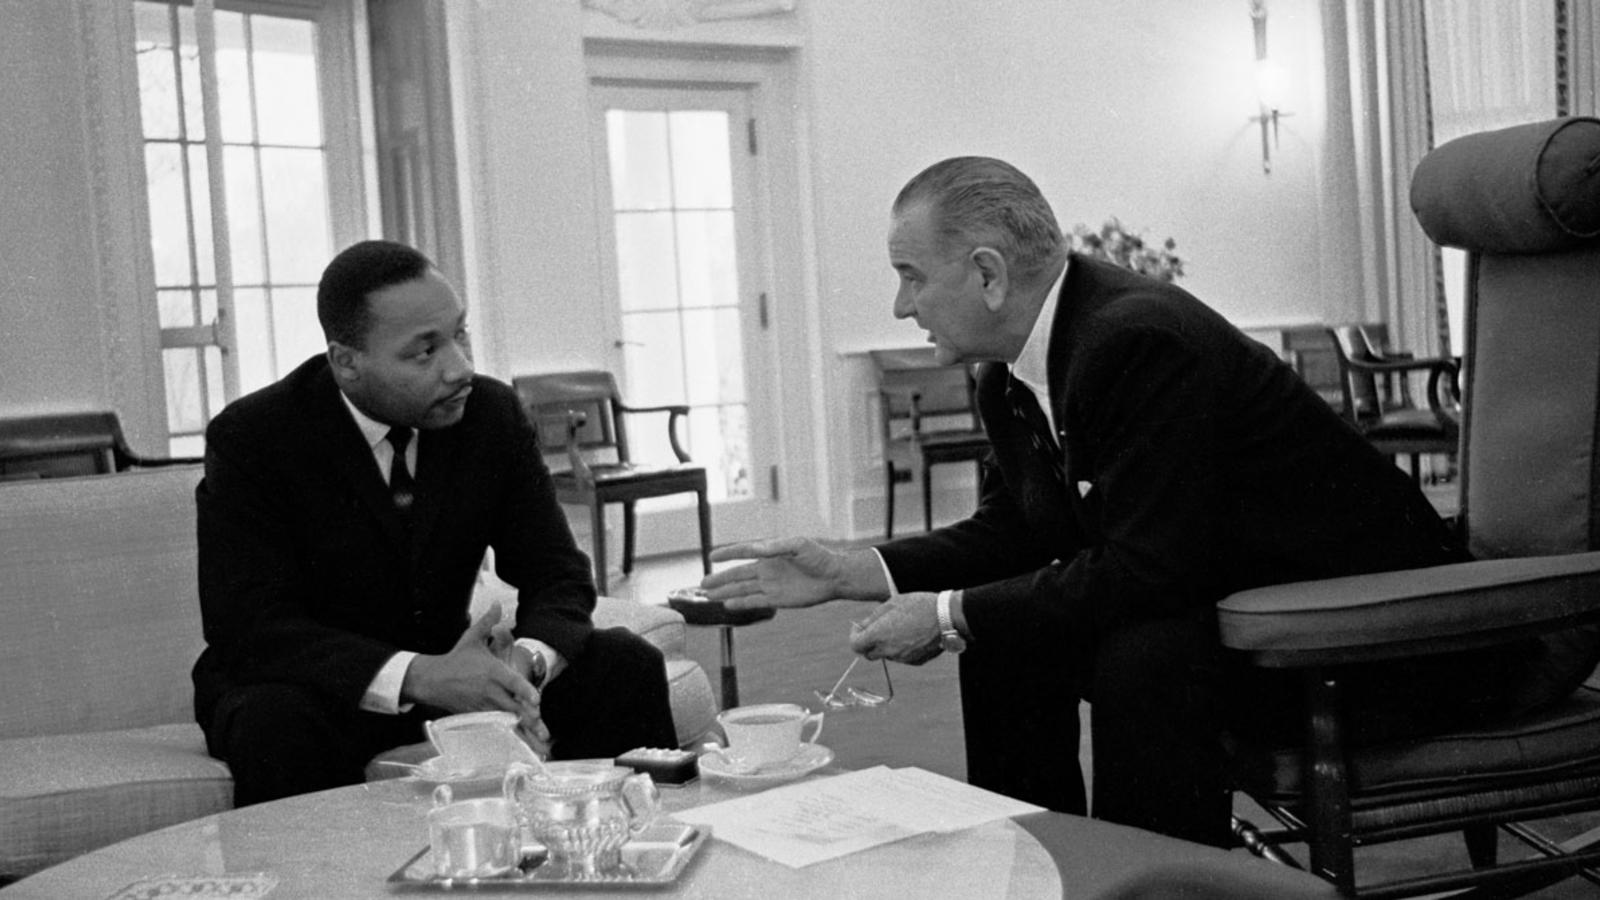 Martin Luther King Jr. meeting with LBJ